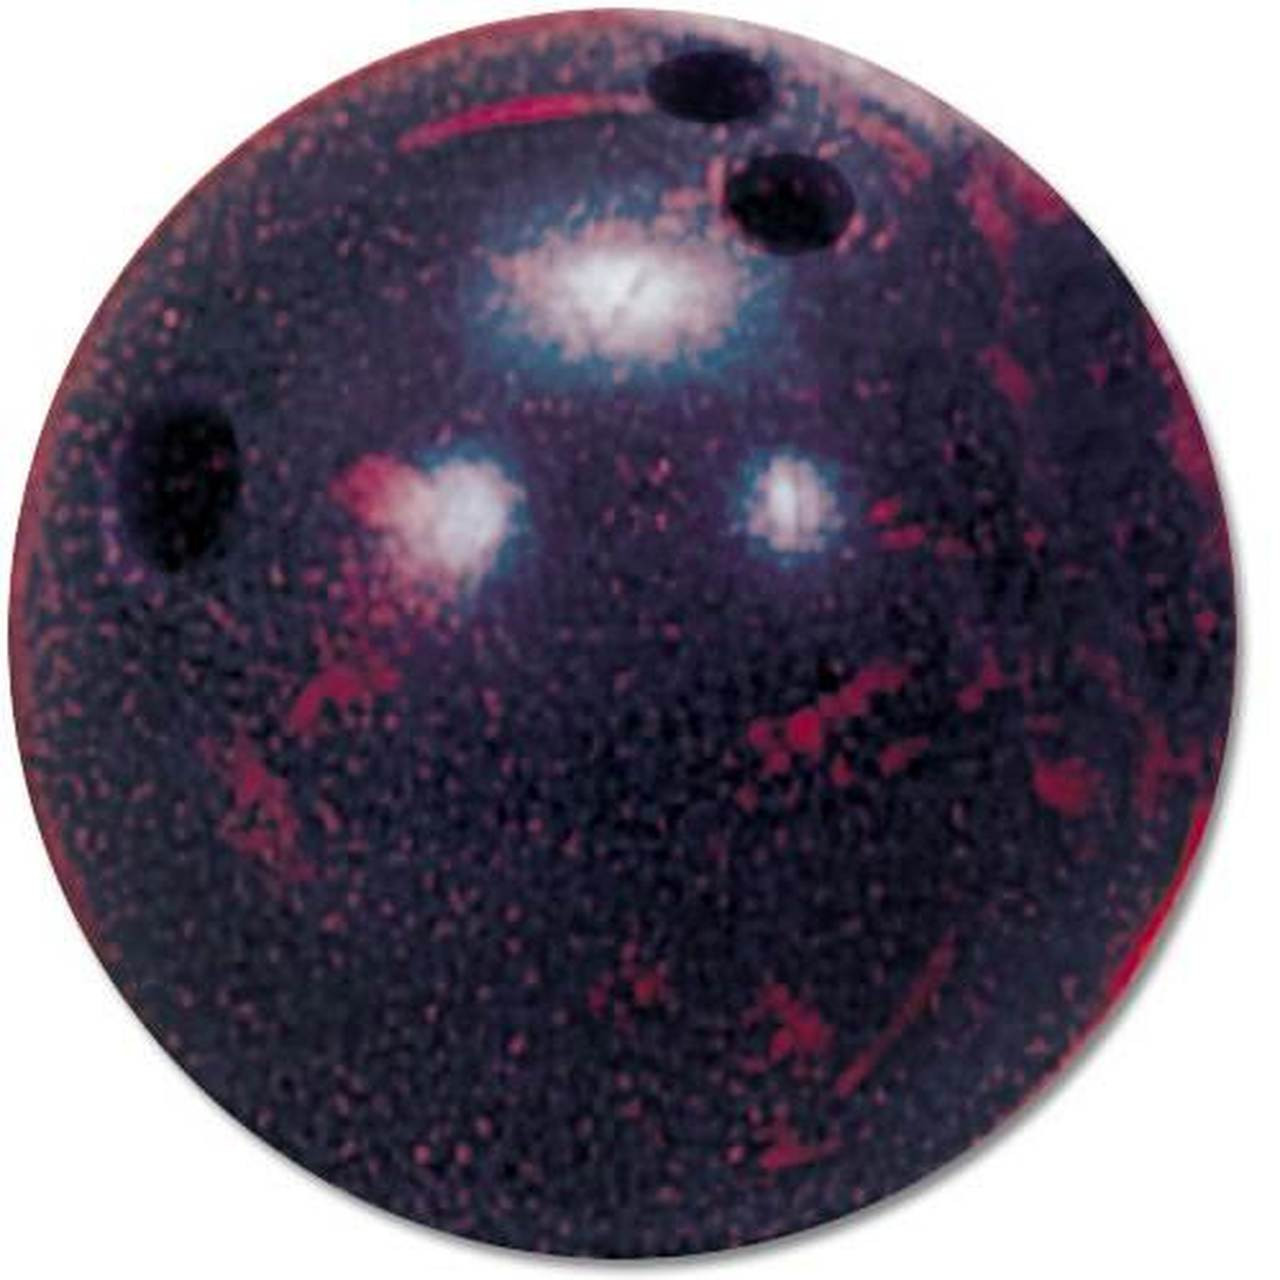 Rubber Bowling ball